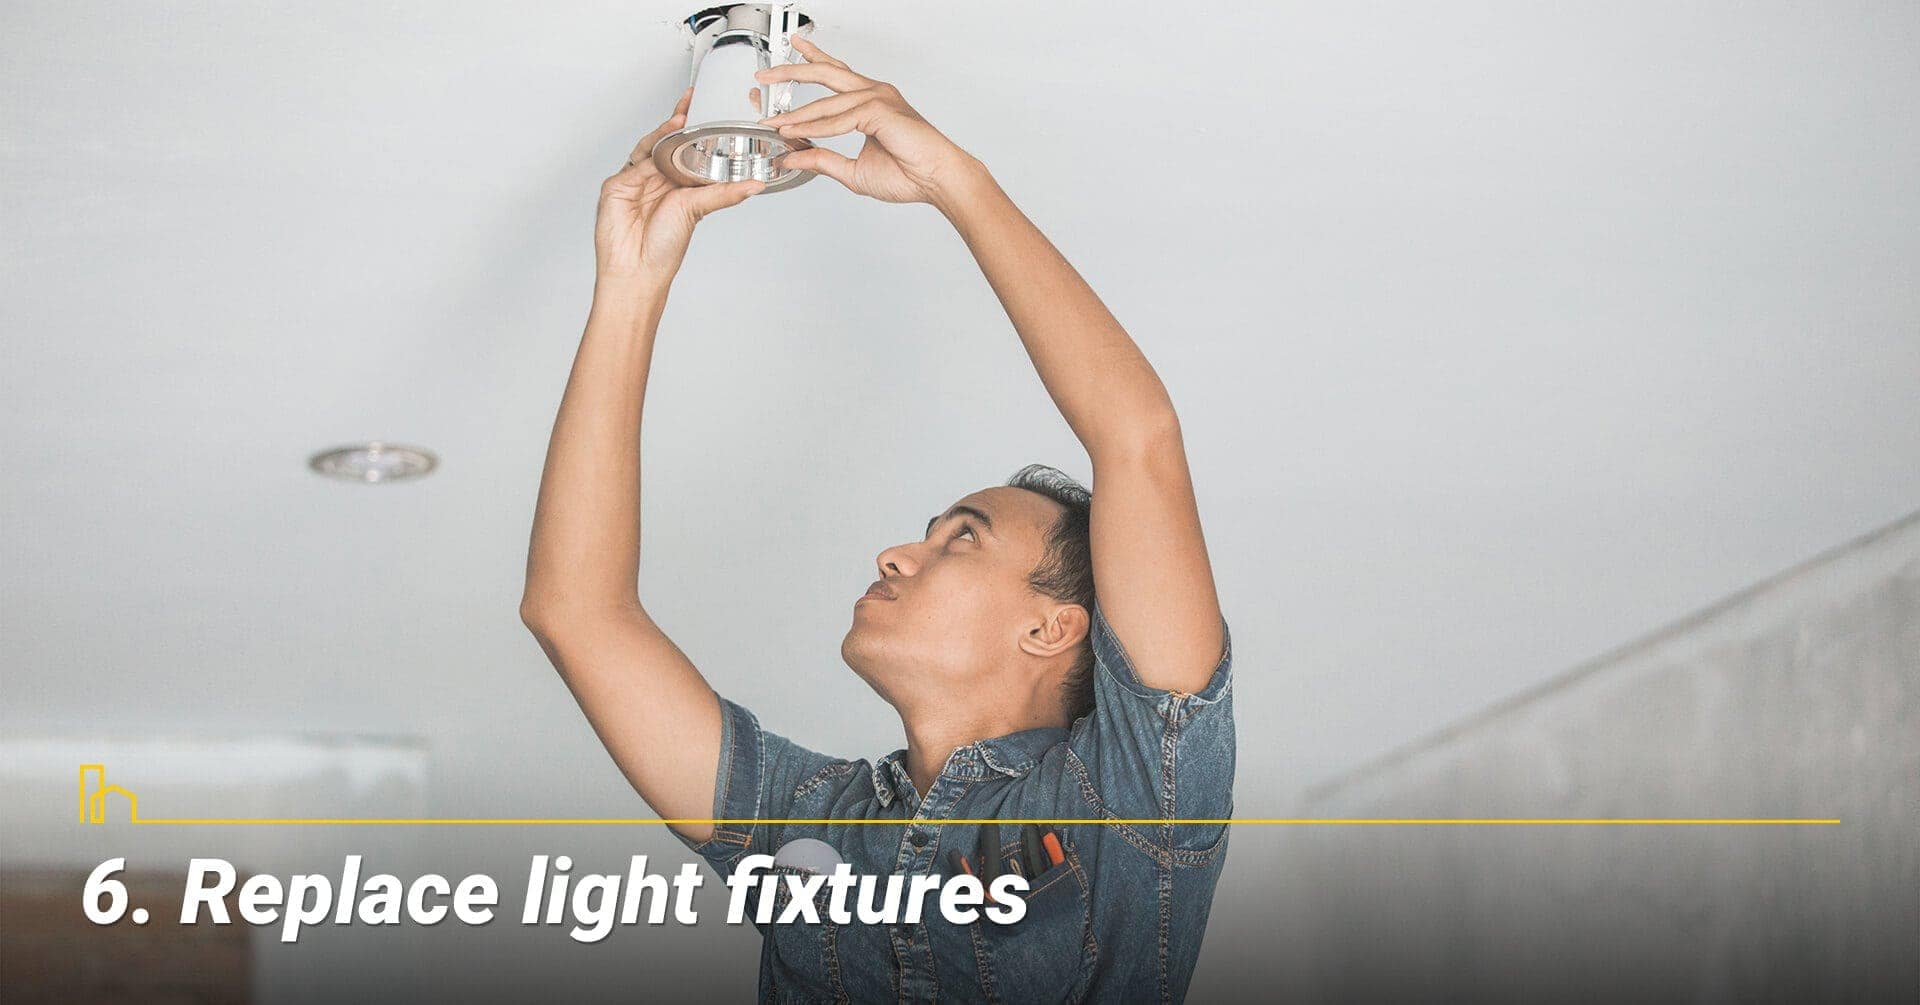 Replace light fixtures, upgrade lighting fixtures